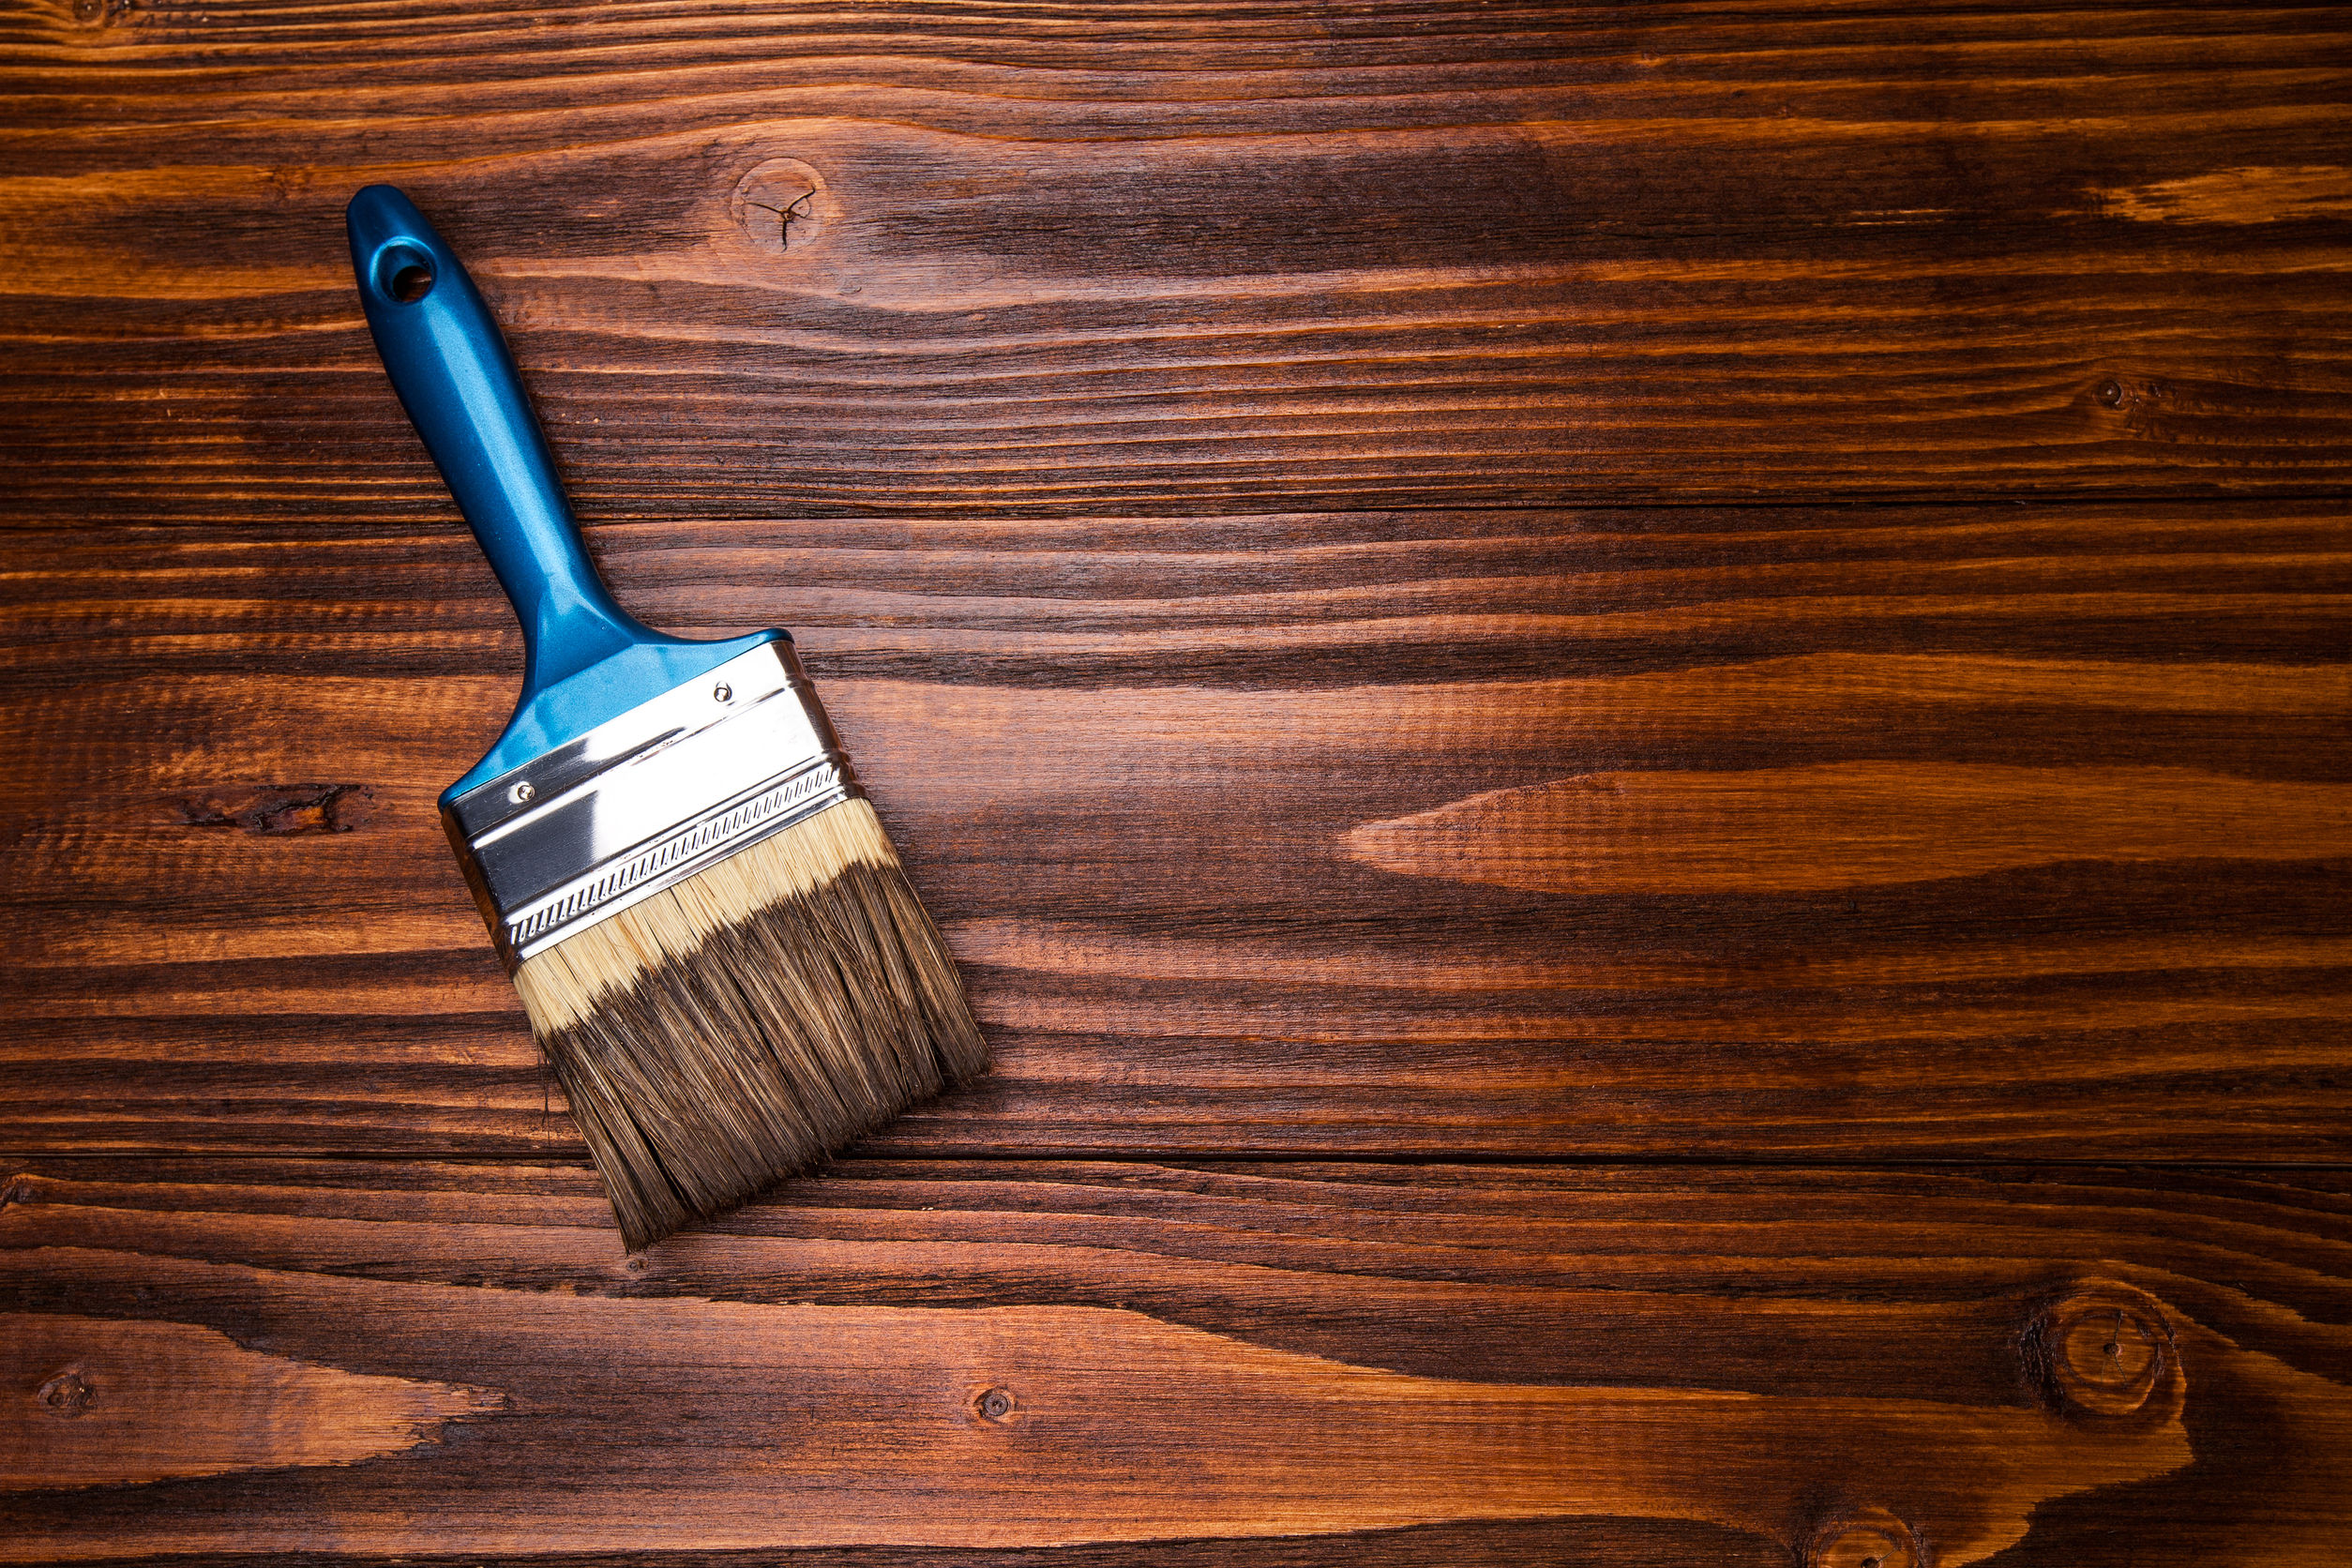 How To Stain Wood Floors Without The Blotchy Effect